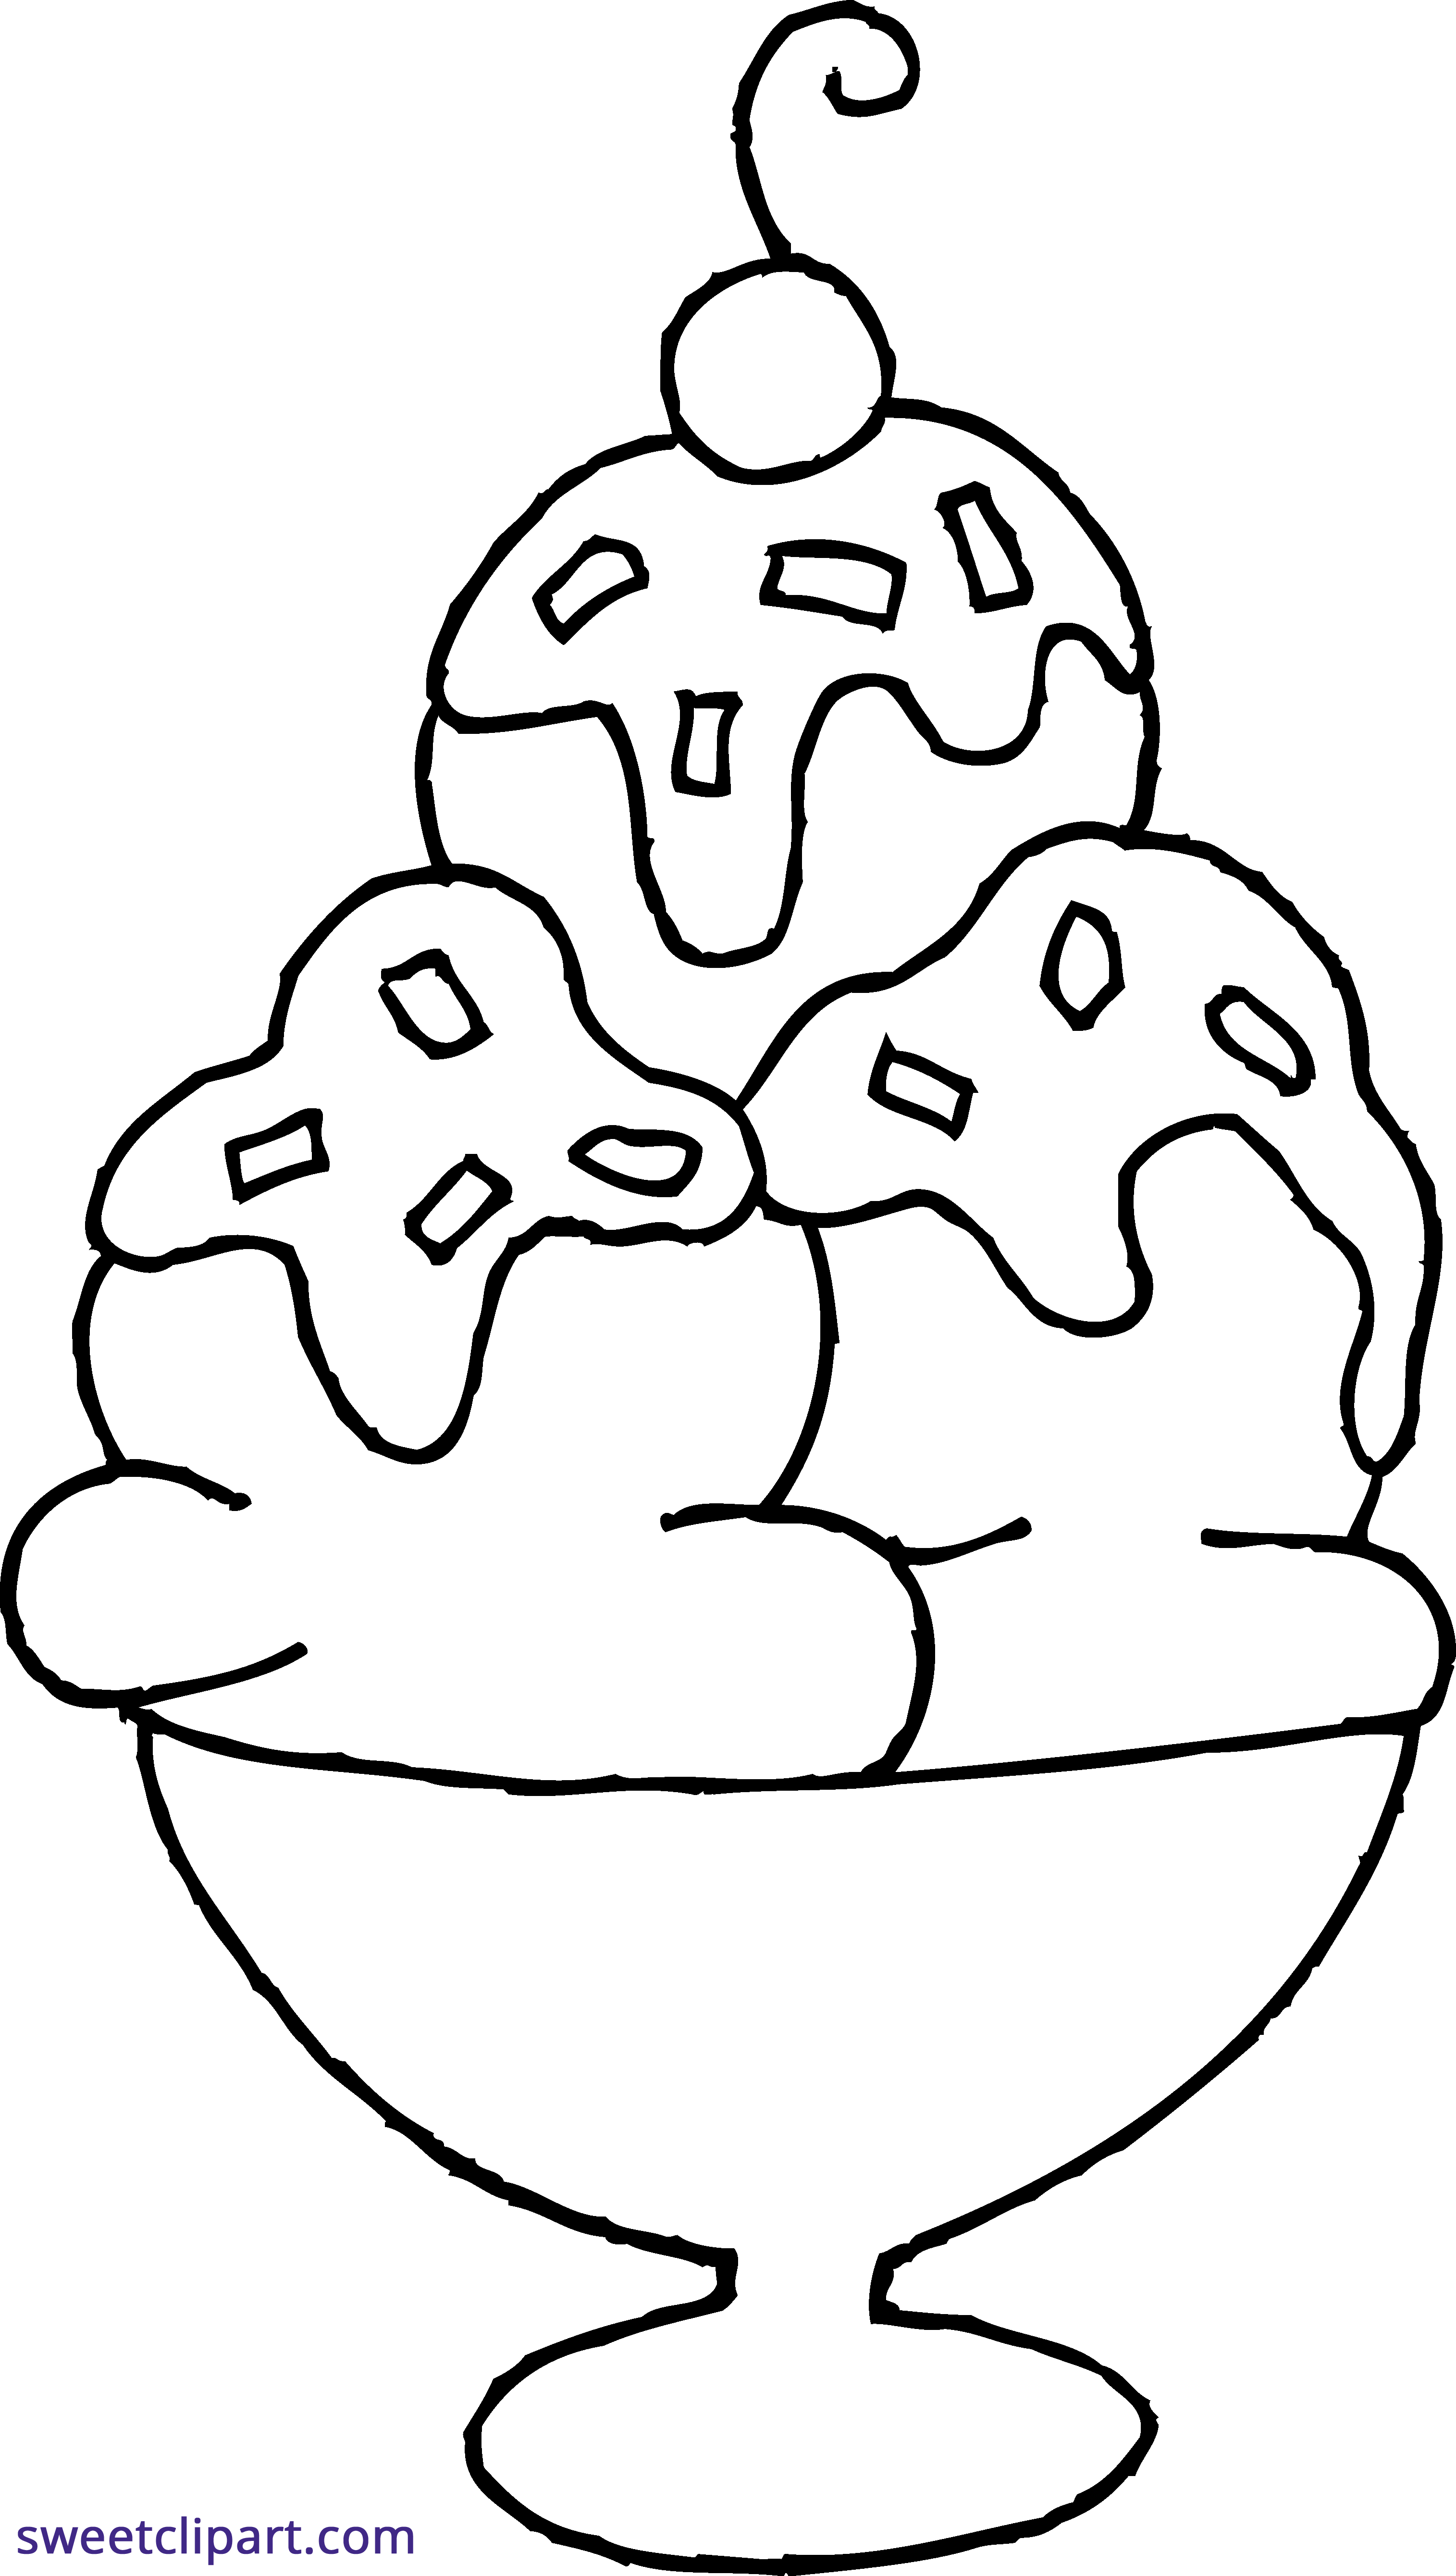 Mail clipart coloring sheet. Ice cream sundae page